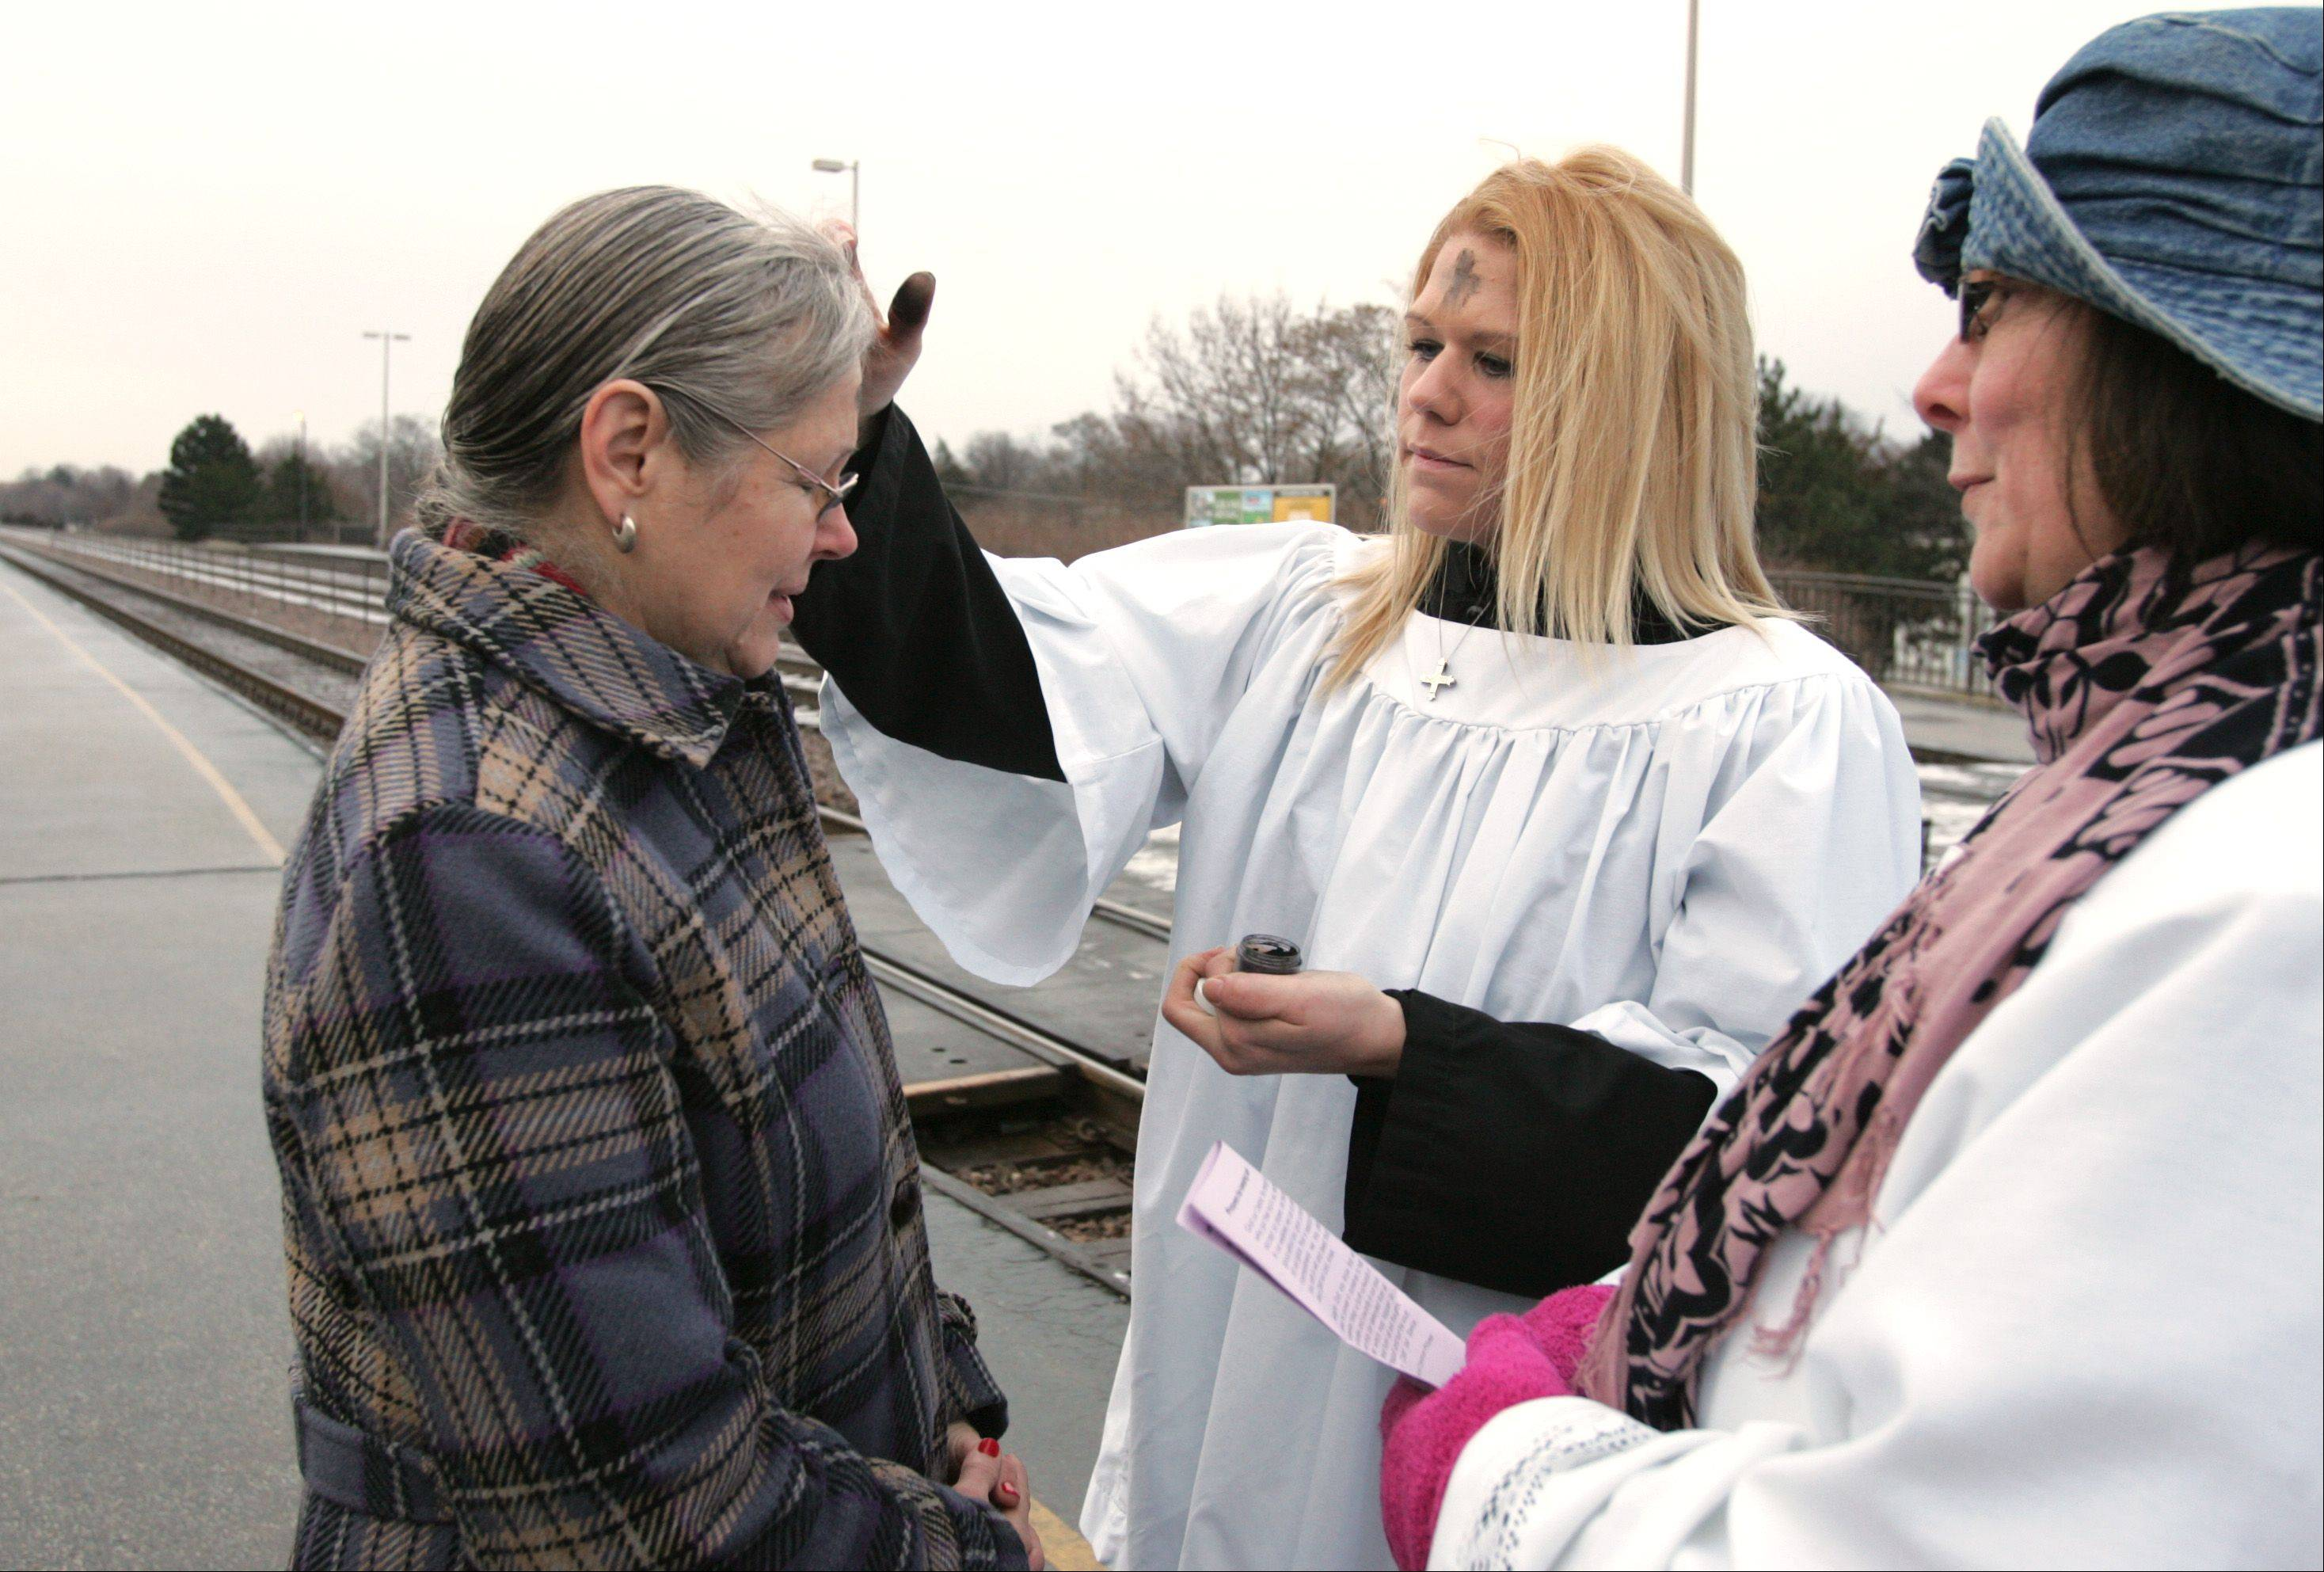 Maureen Elliot of Calvary Episcopal Church in Lombard dispenses Ashes to Go to commuter Marilyn Stein at the Lombard train station Wednesday morning as Ruth Ann Pfohl offers a prayer. A team from the church gave ashes to 107 people Wednesday morning.